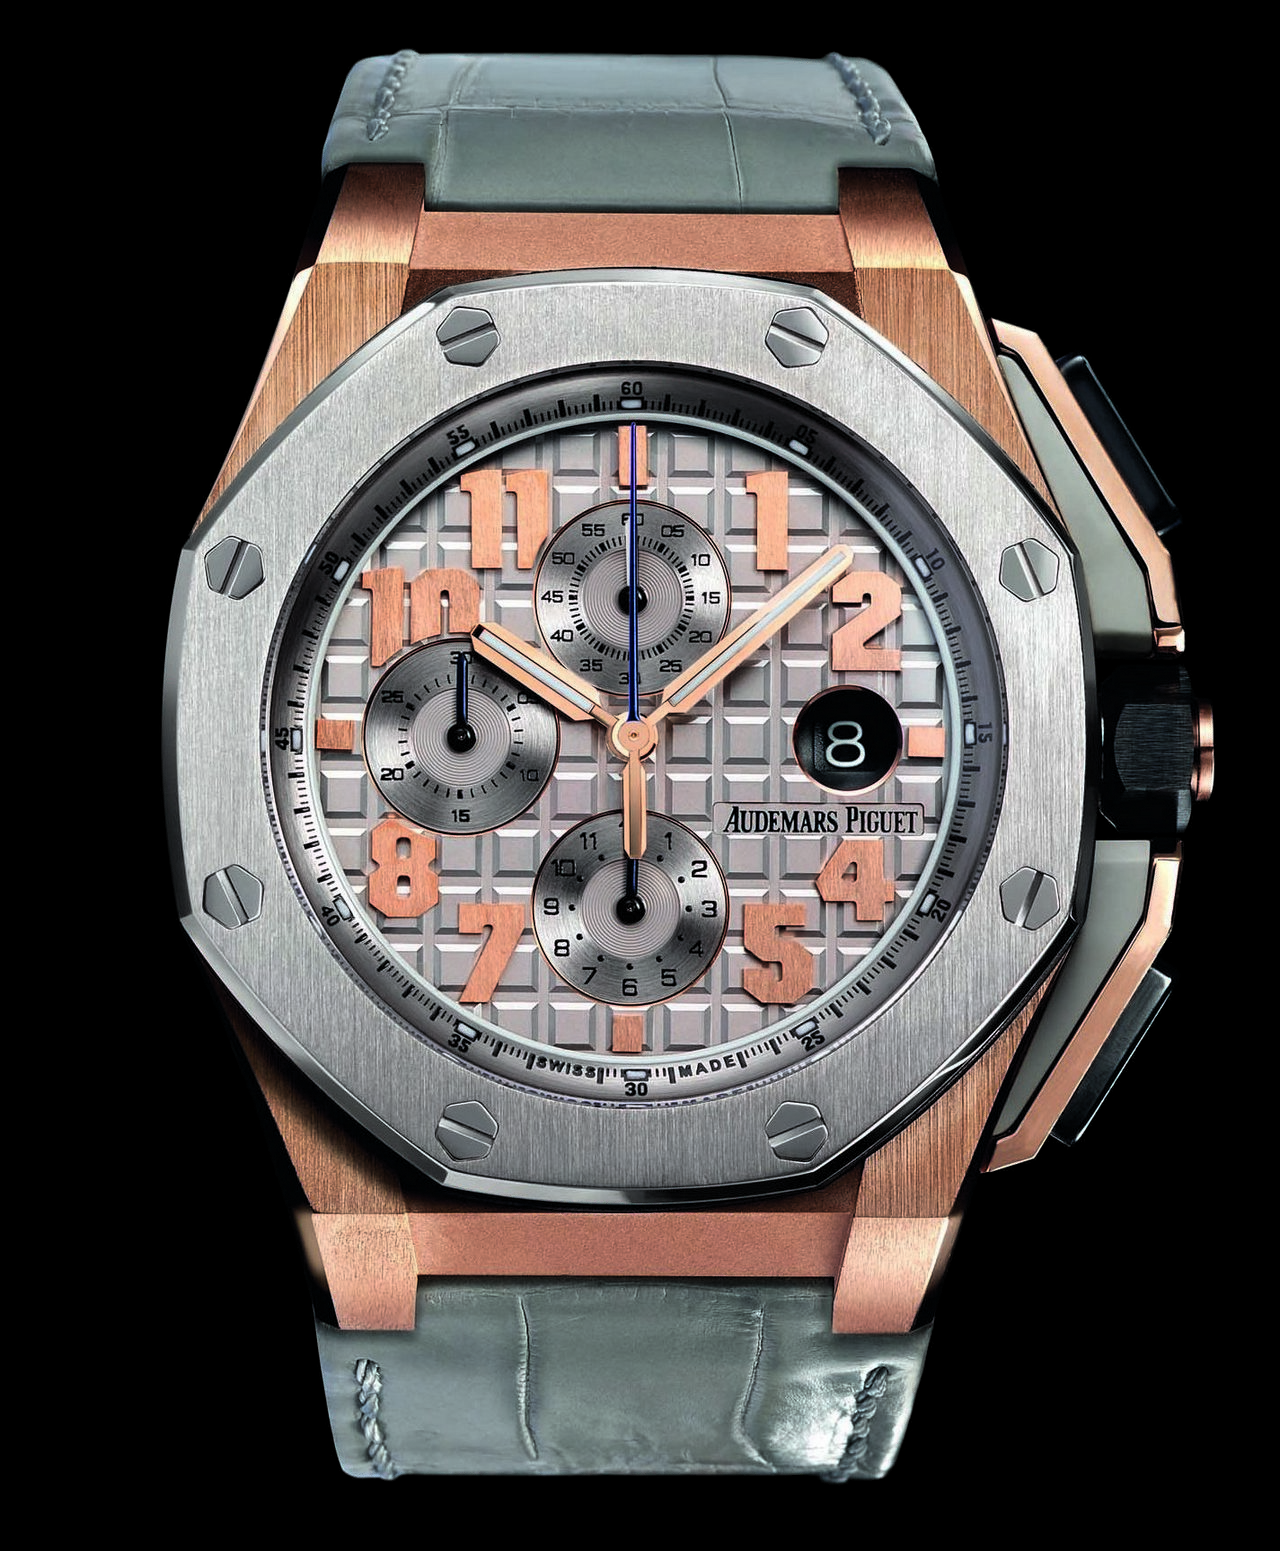 audemars-piguet-royal-oak-offshore-lebron-james-limited-edition_10-100